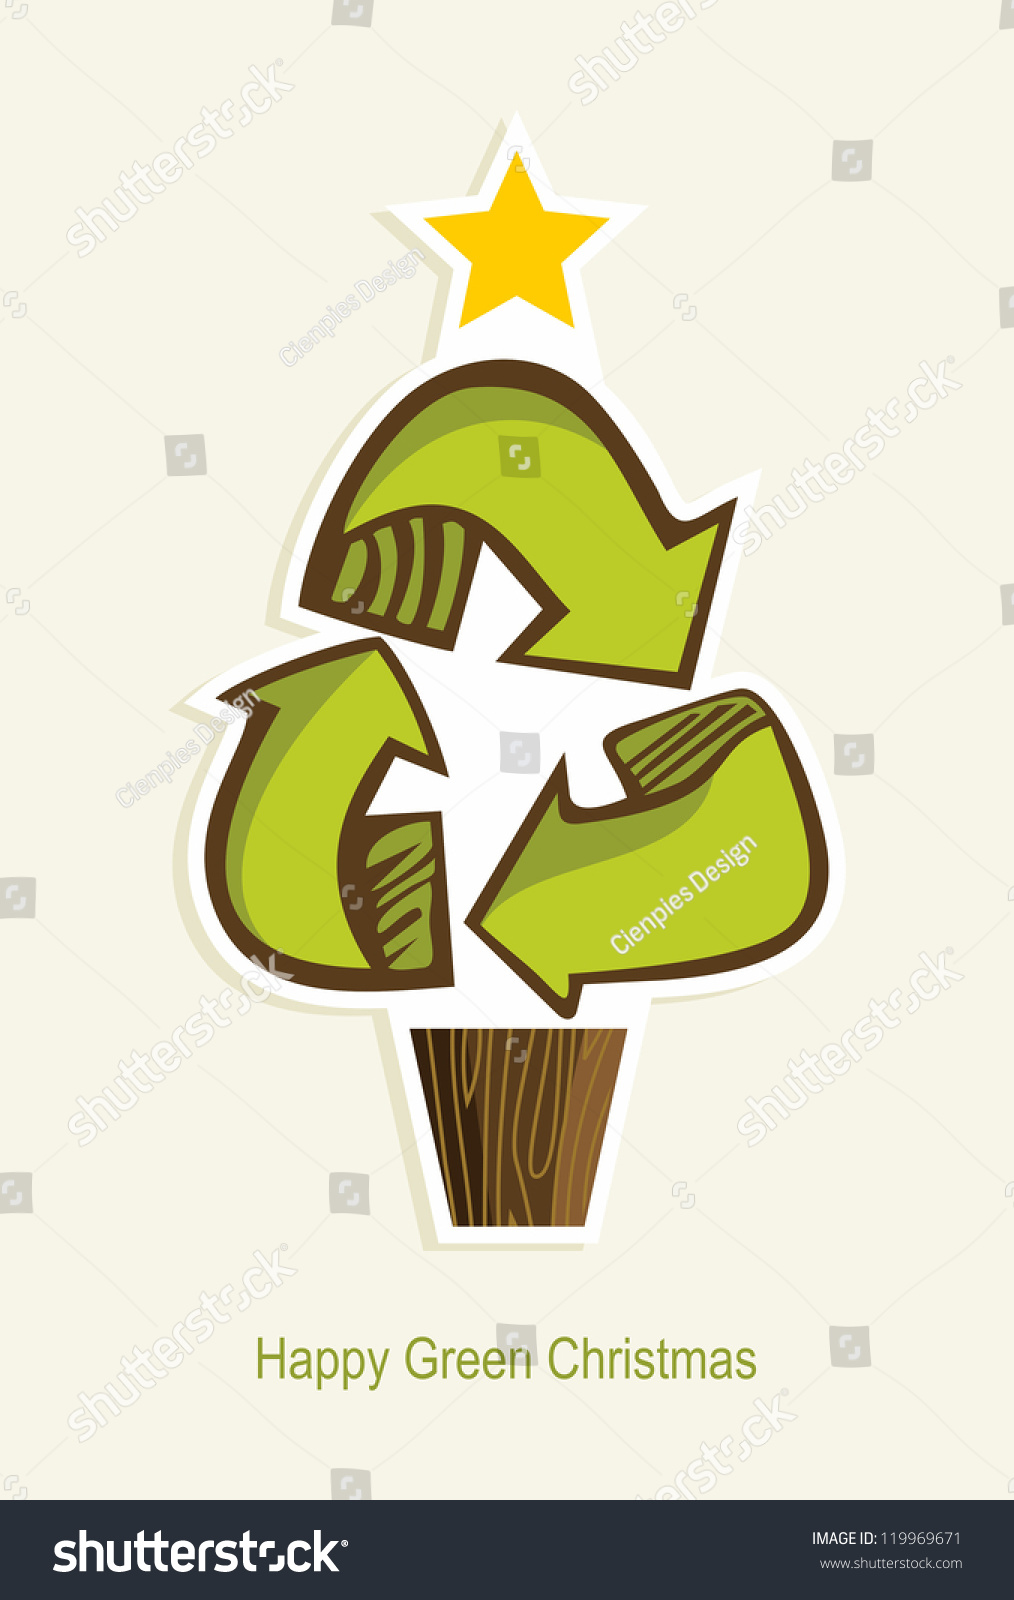 Green Recycle Symbol Christmas Tree Cartoon Stock Vector Royalty Free 119969671 Looking for christmas tree coloring pages this holiday season? https www shutterstock com image vector green recycle symbol christmas tree cartoon 119969671